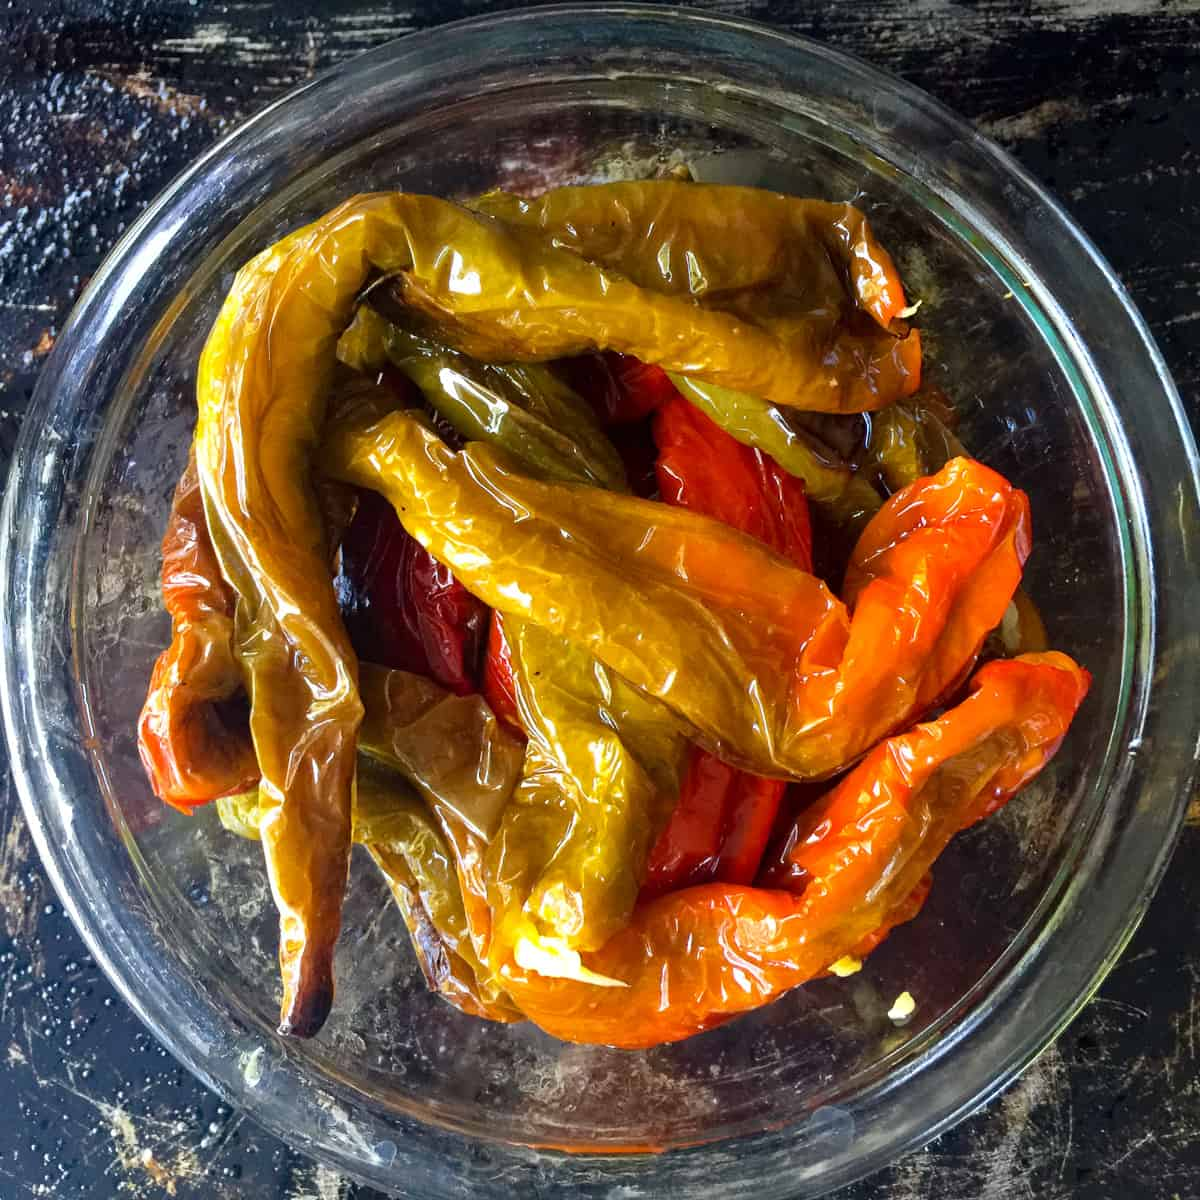 glass bowl with red and green Italian long hot peppers on baking sheet